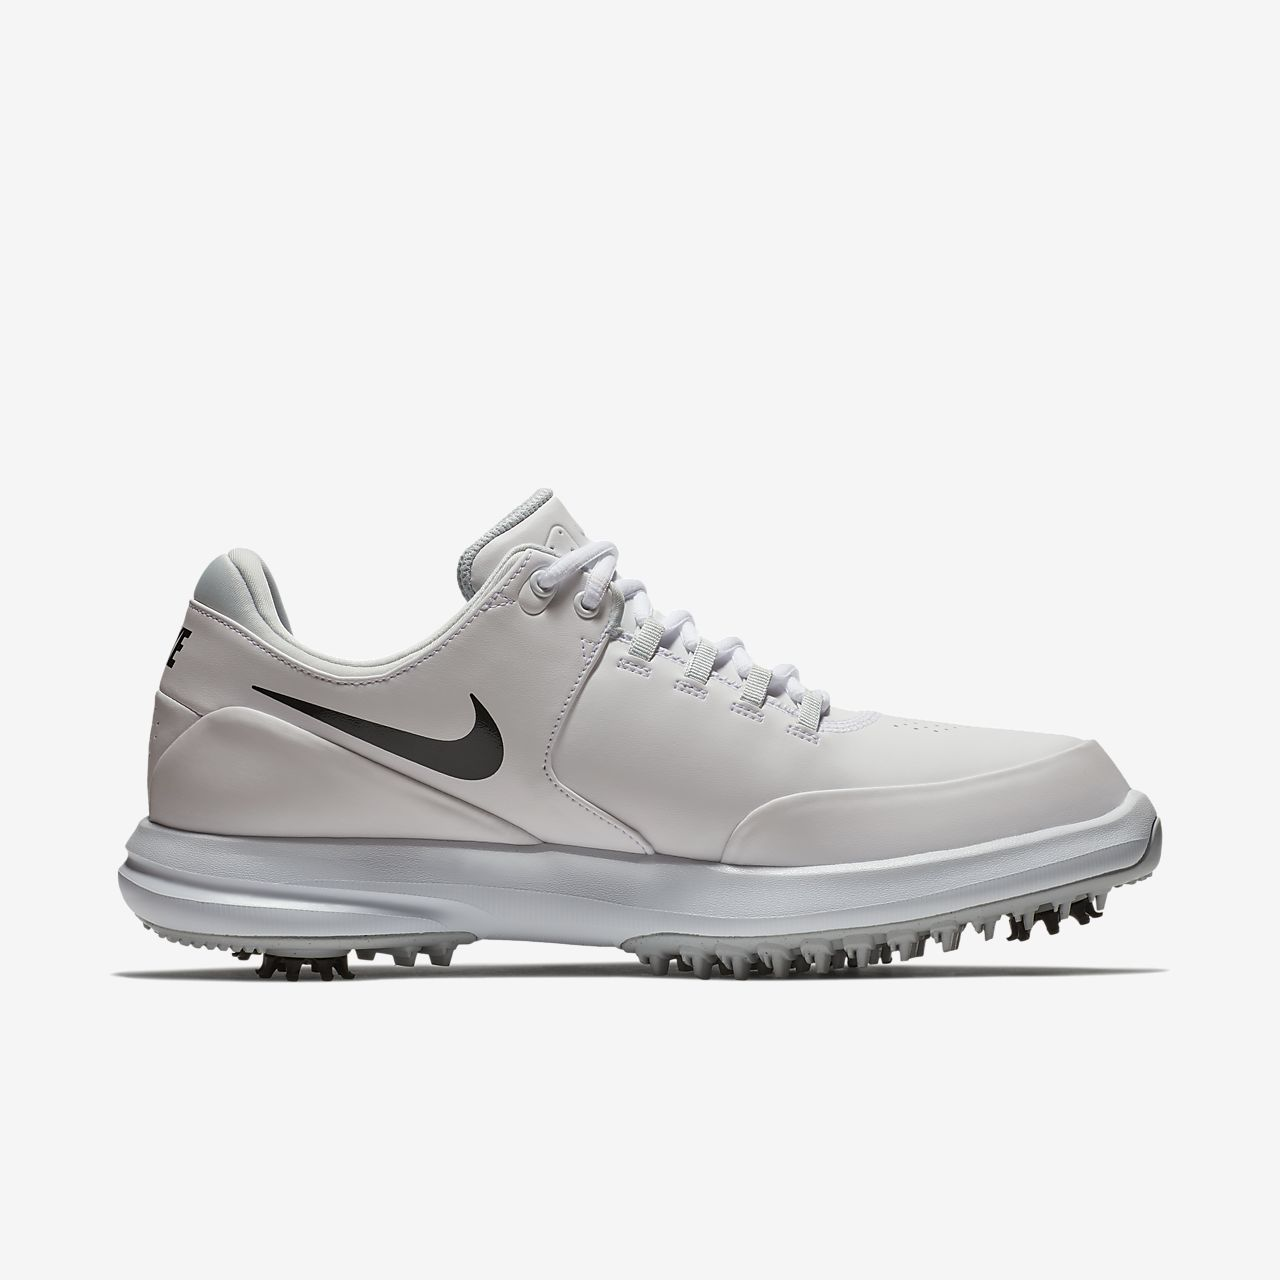 f4252c54c0665 Nike Air Zoom Accurate Men s Golf Shoe. Nike.com GB